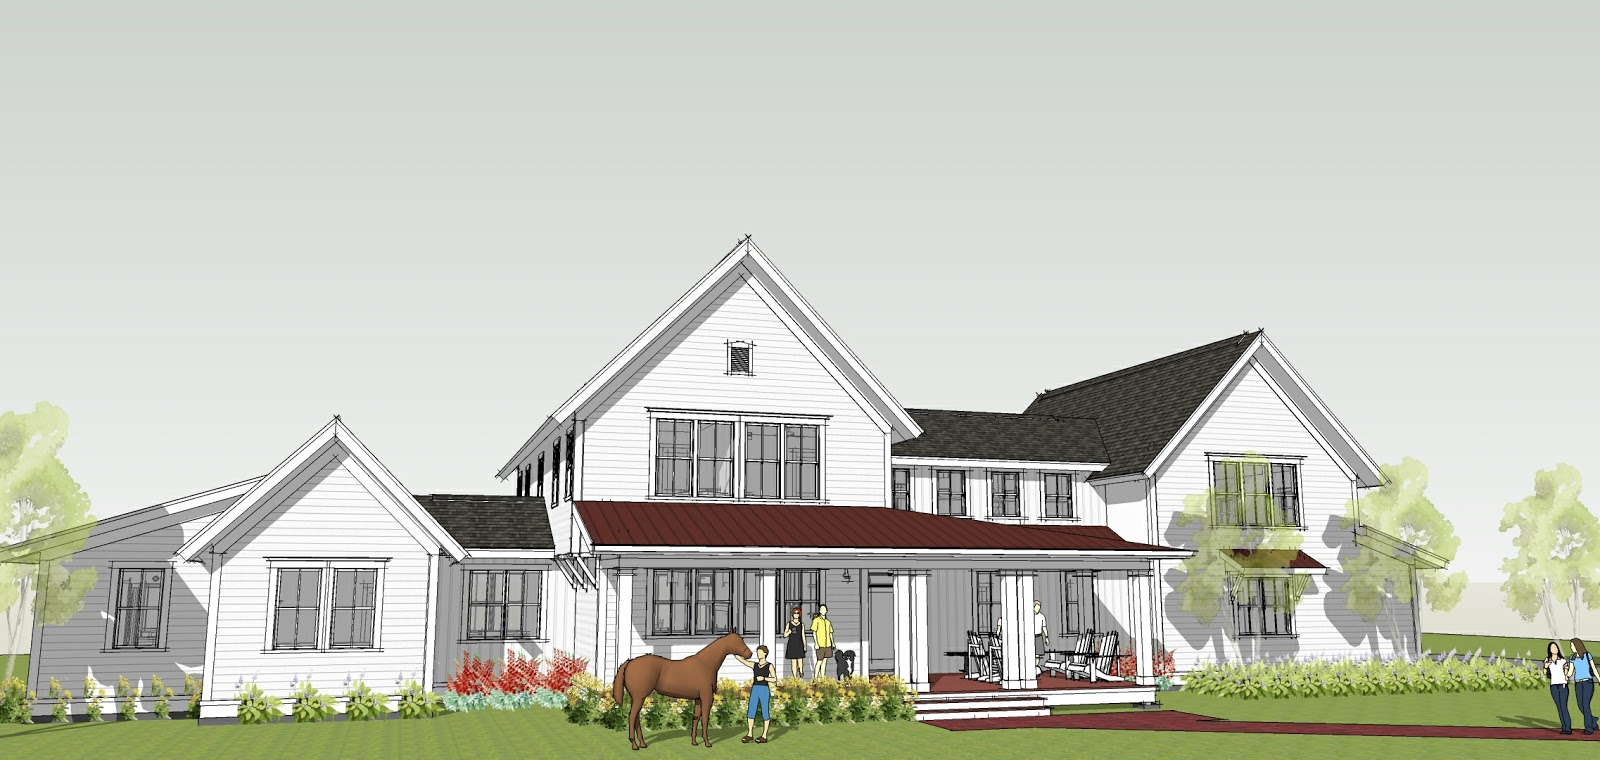 ron brenner architects New Modern Farmhouse Design pleted